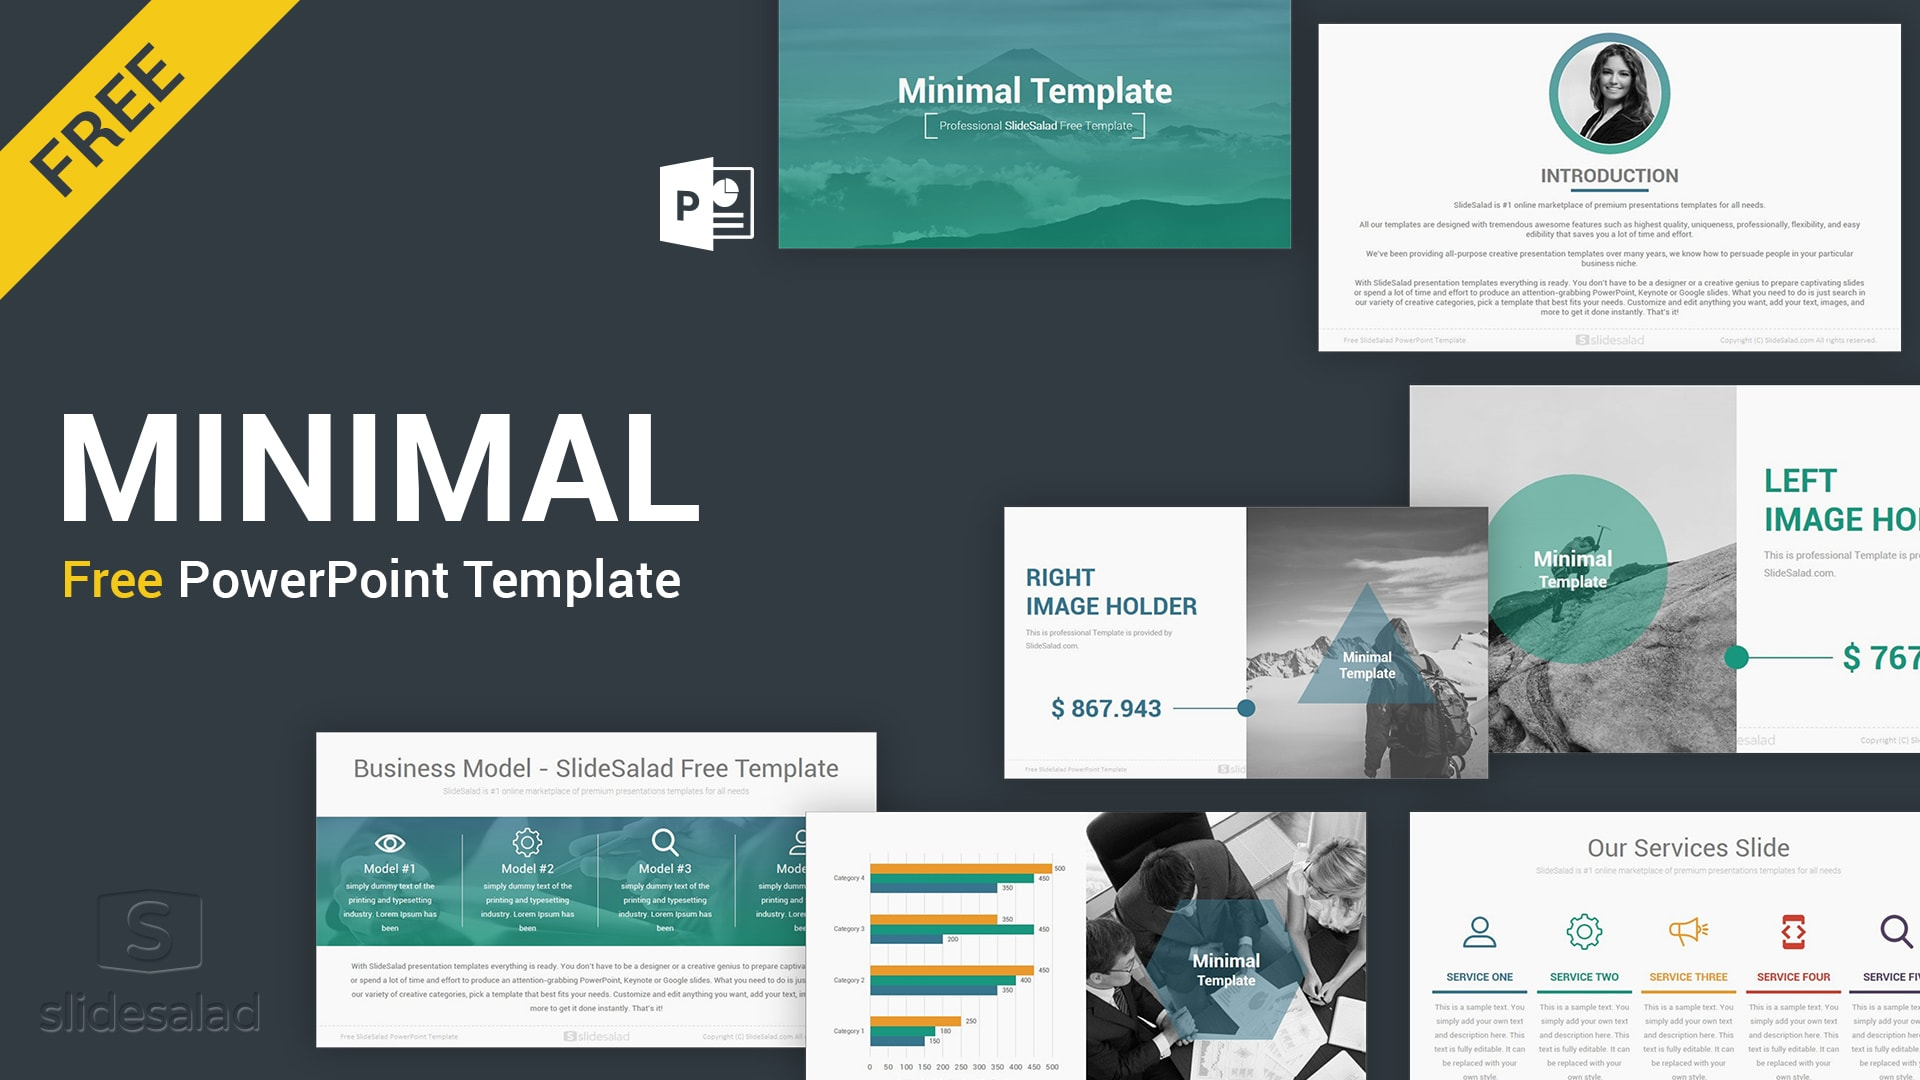 Minimal Free PowerPoint Presentation Templates – Best Free Stunning PPT Template for Multipurpose Presentations